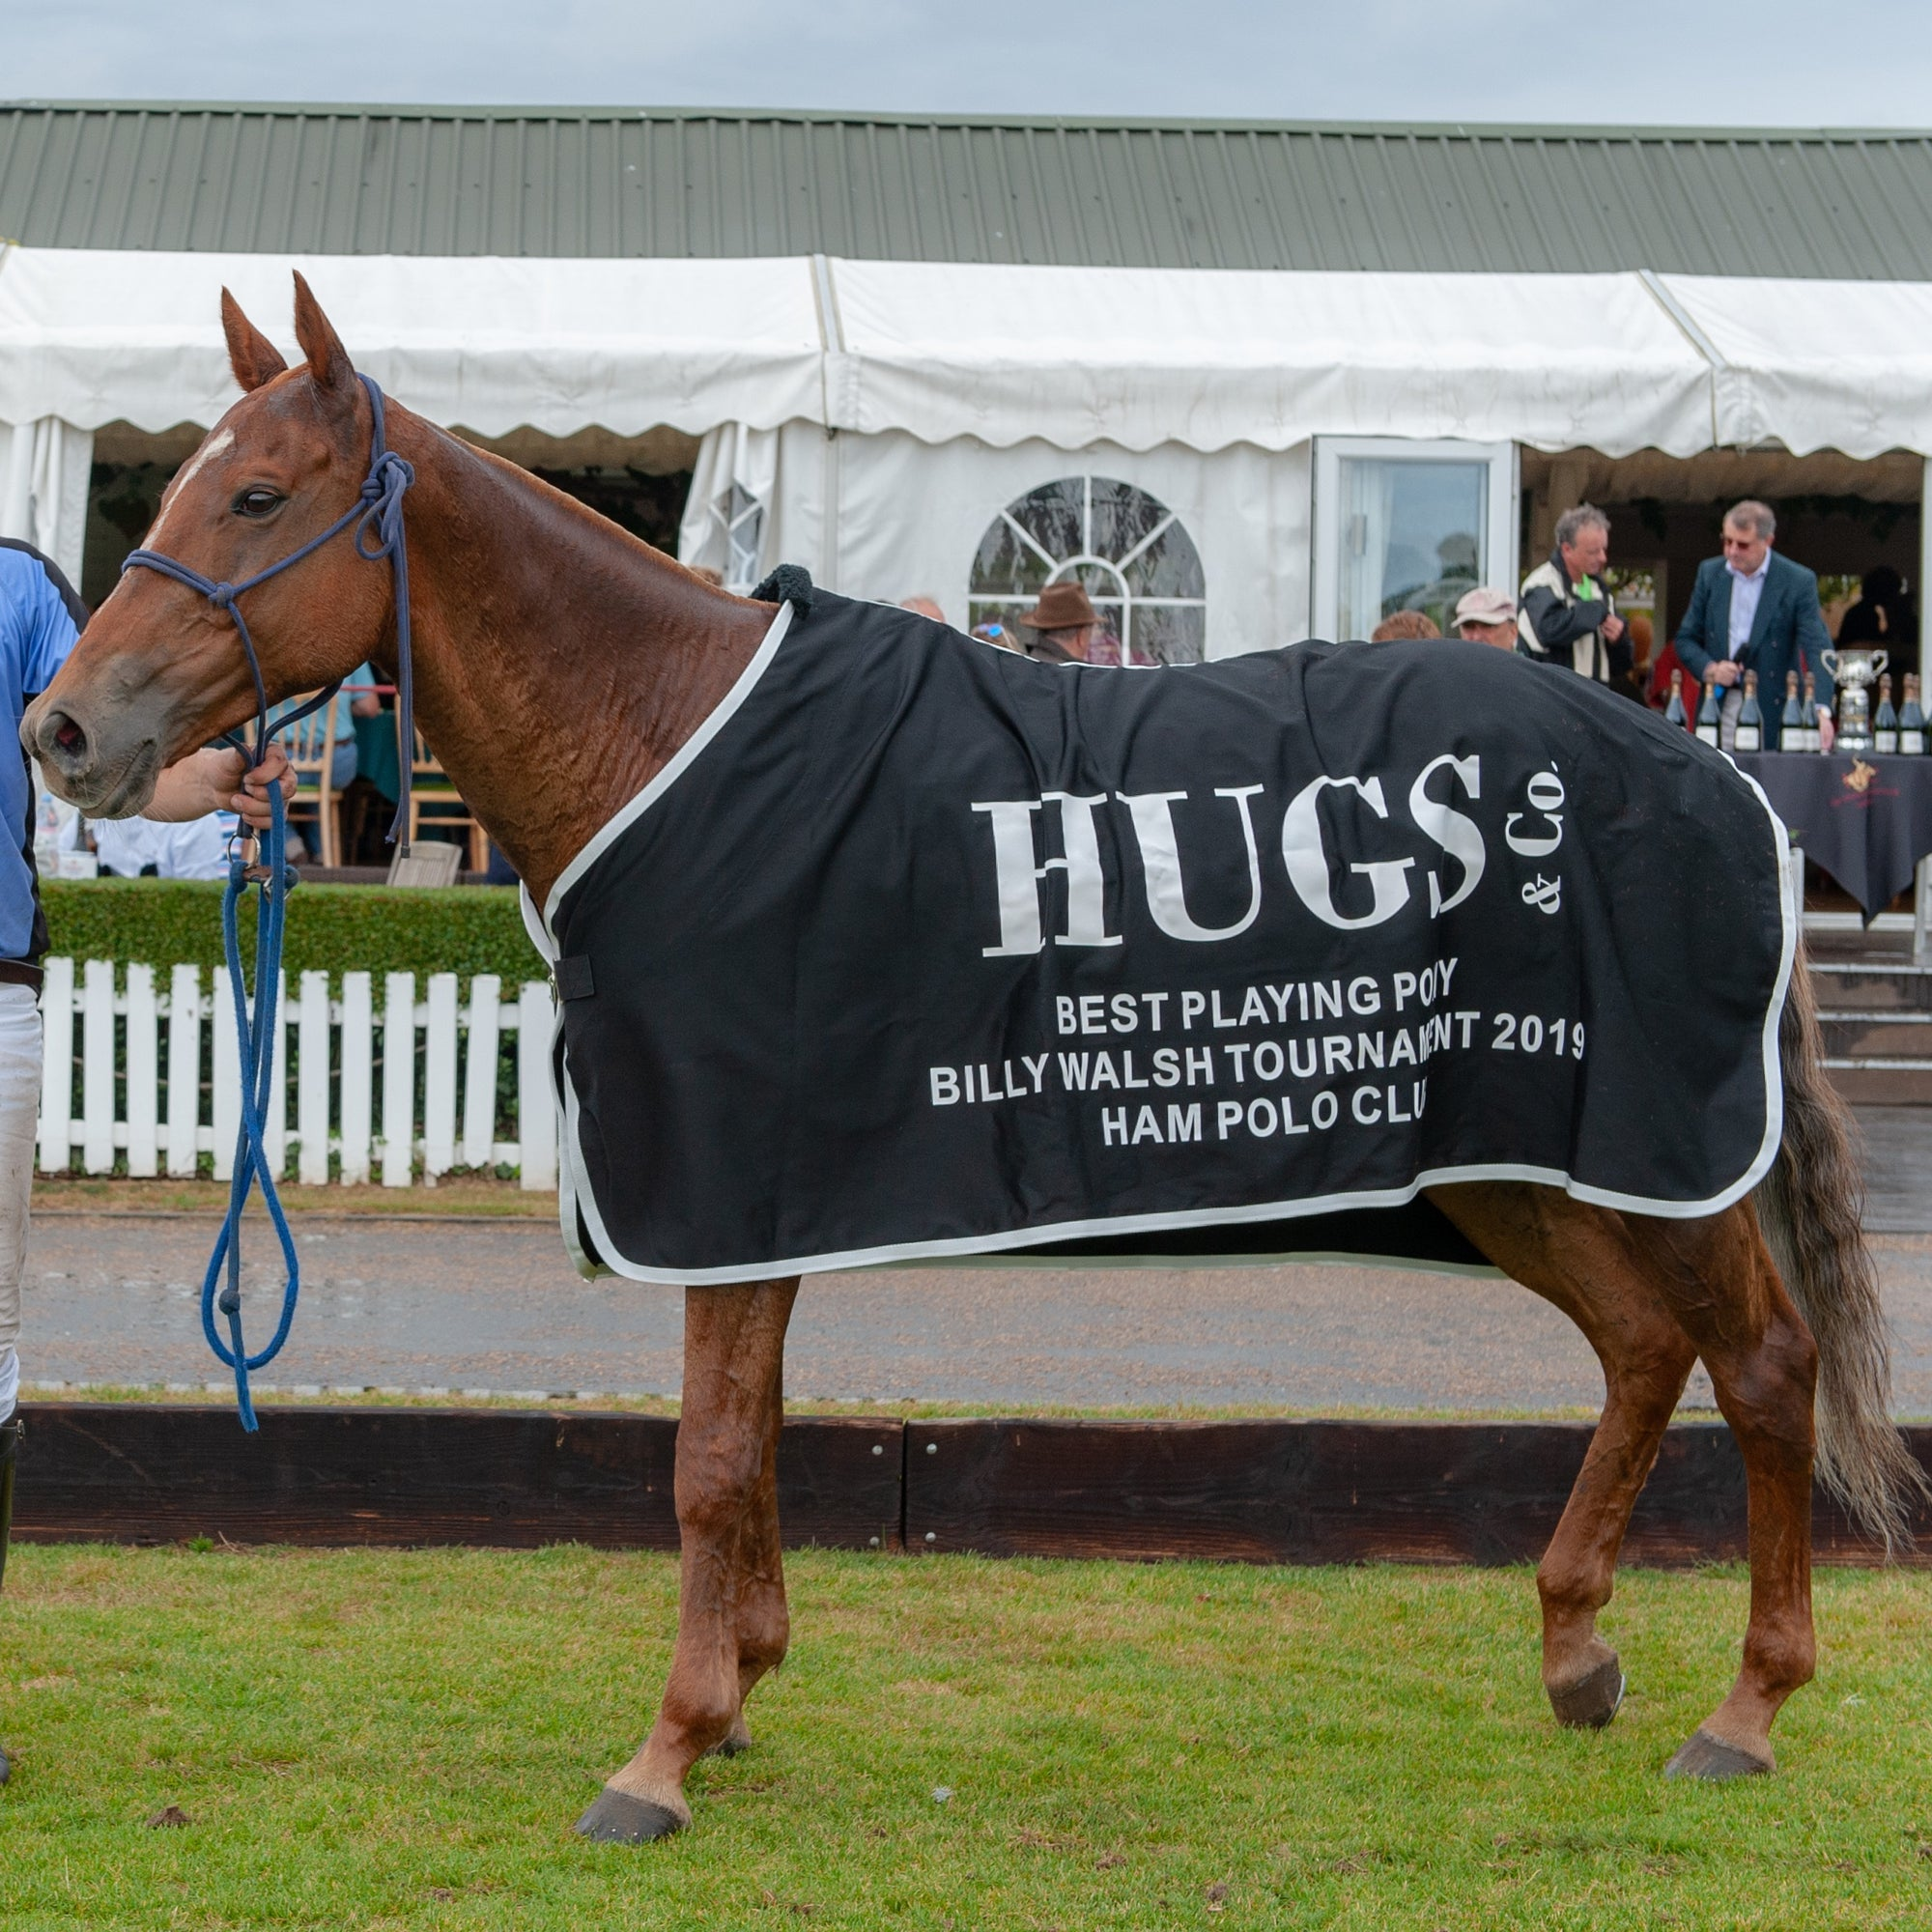 Hugs & Co. Best Playing Pony Award